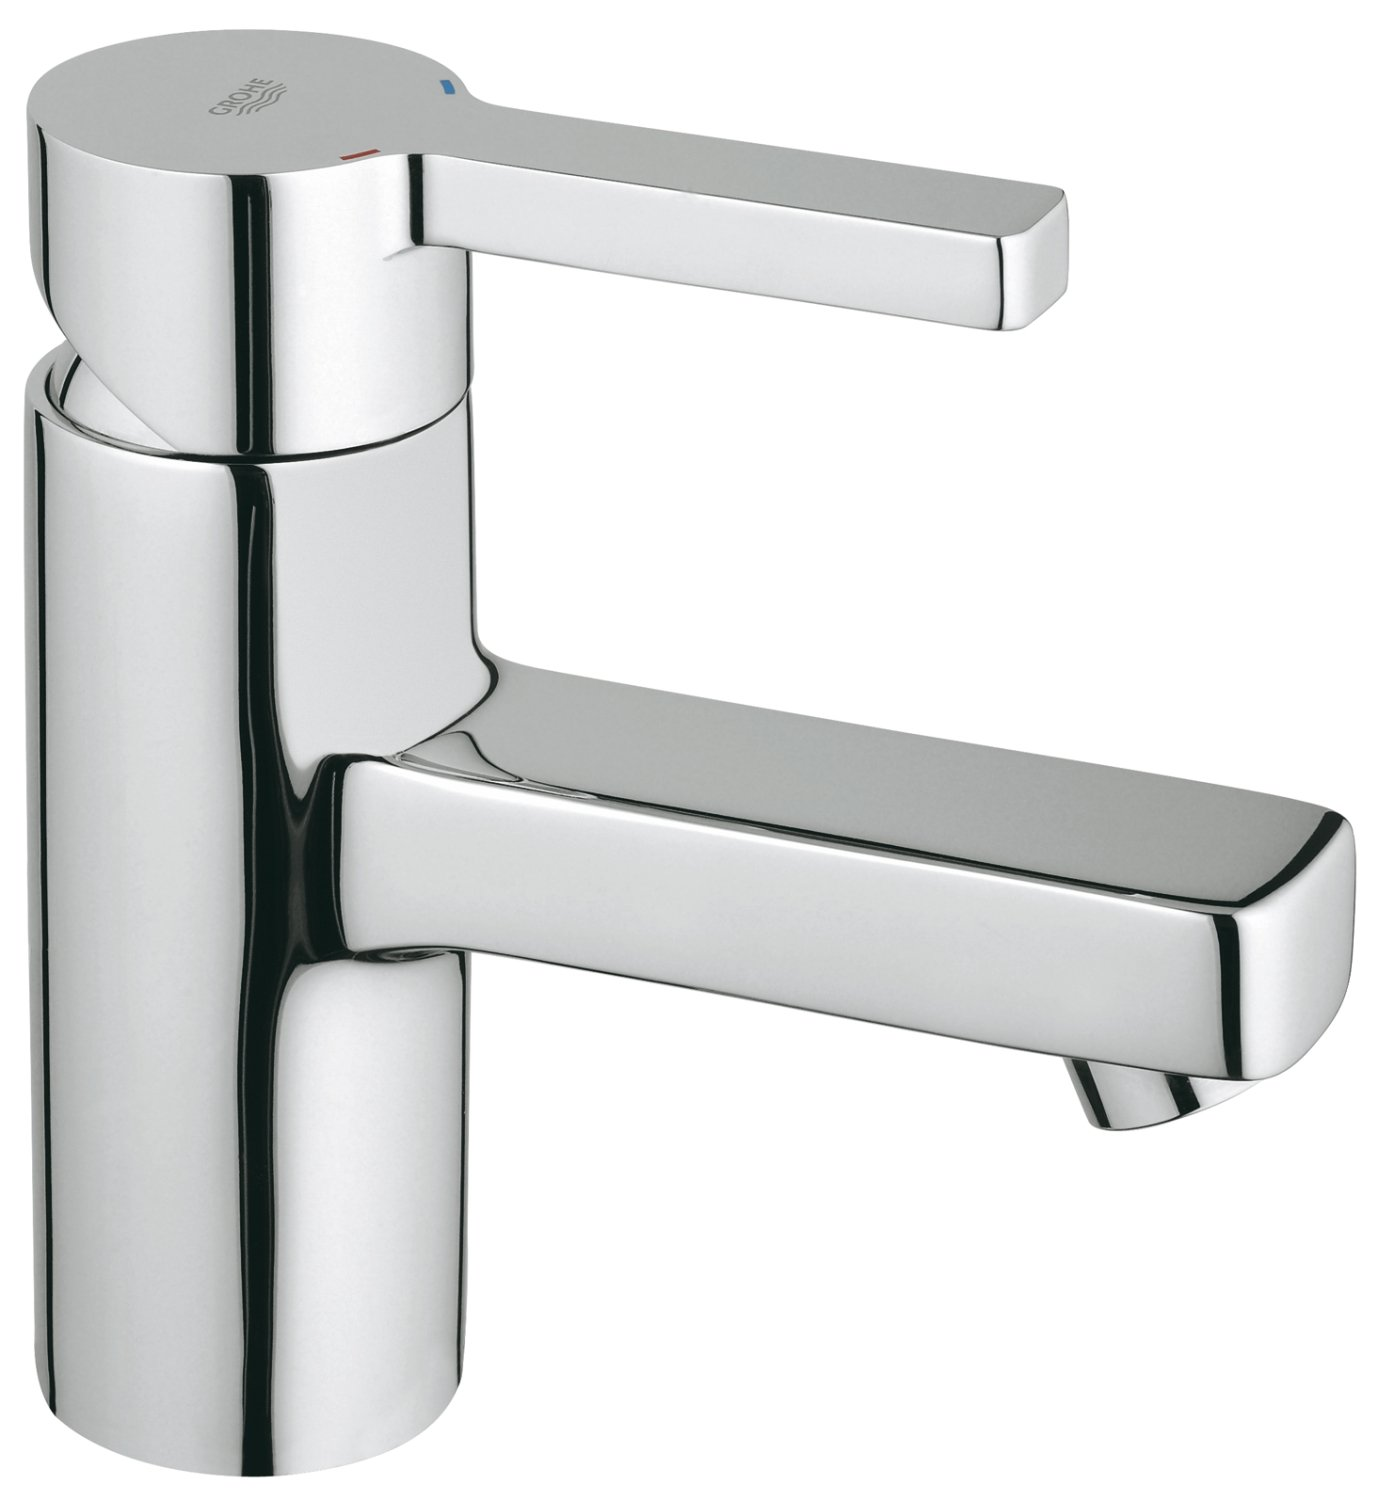 Wasserhahn Grohe Awesome Wundervoll Grohe Concetto Chrom Amazonde